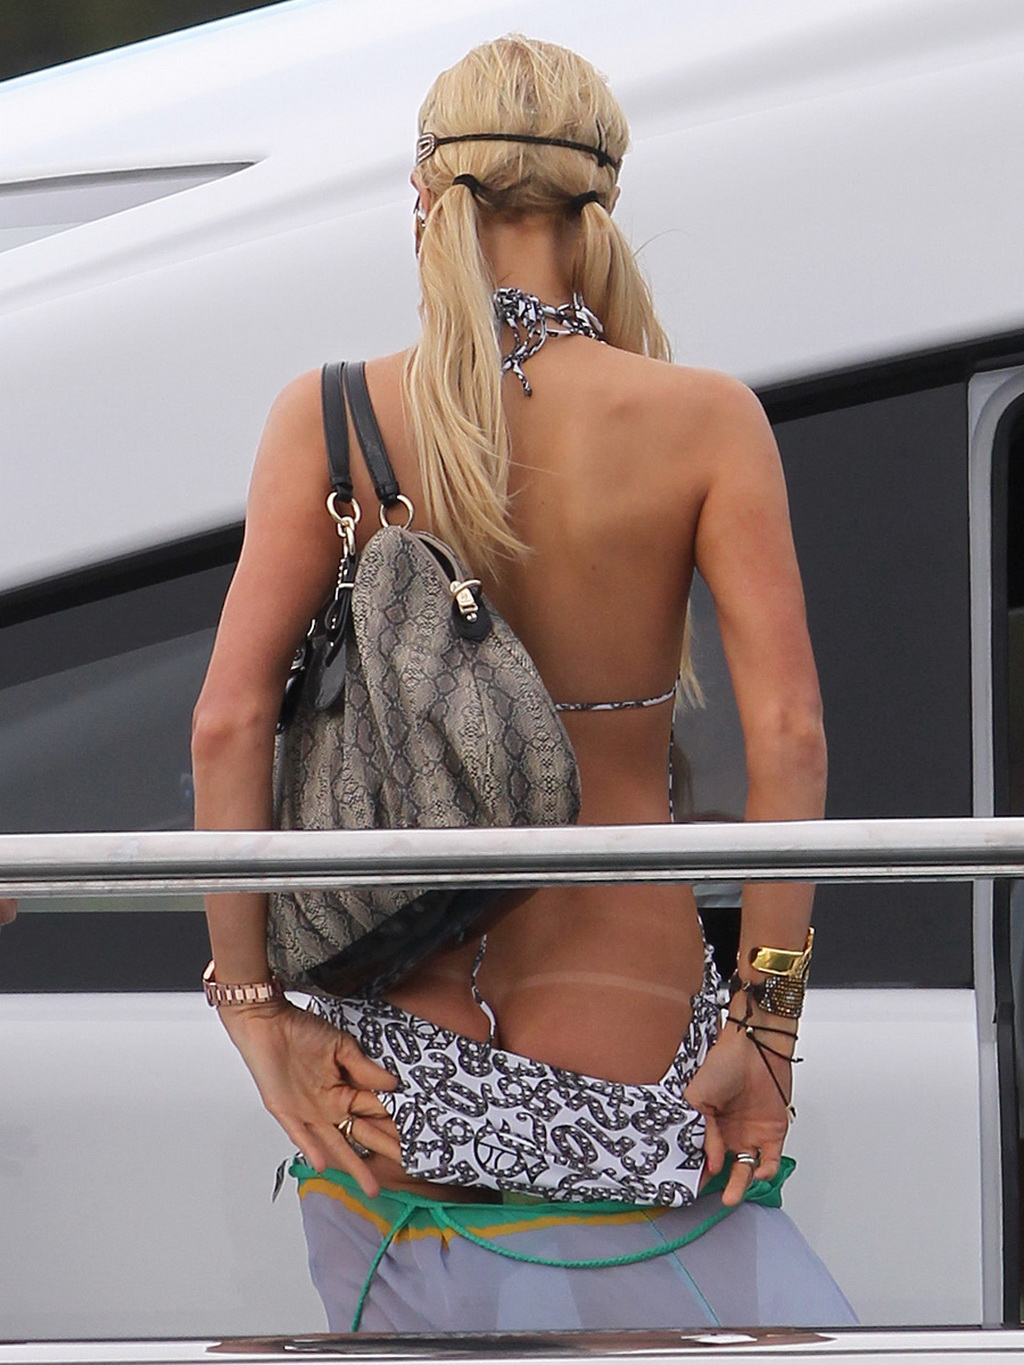 paris hilton ass jpg 1152x768